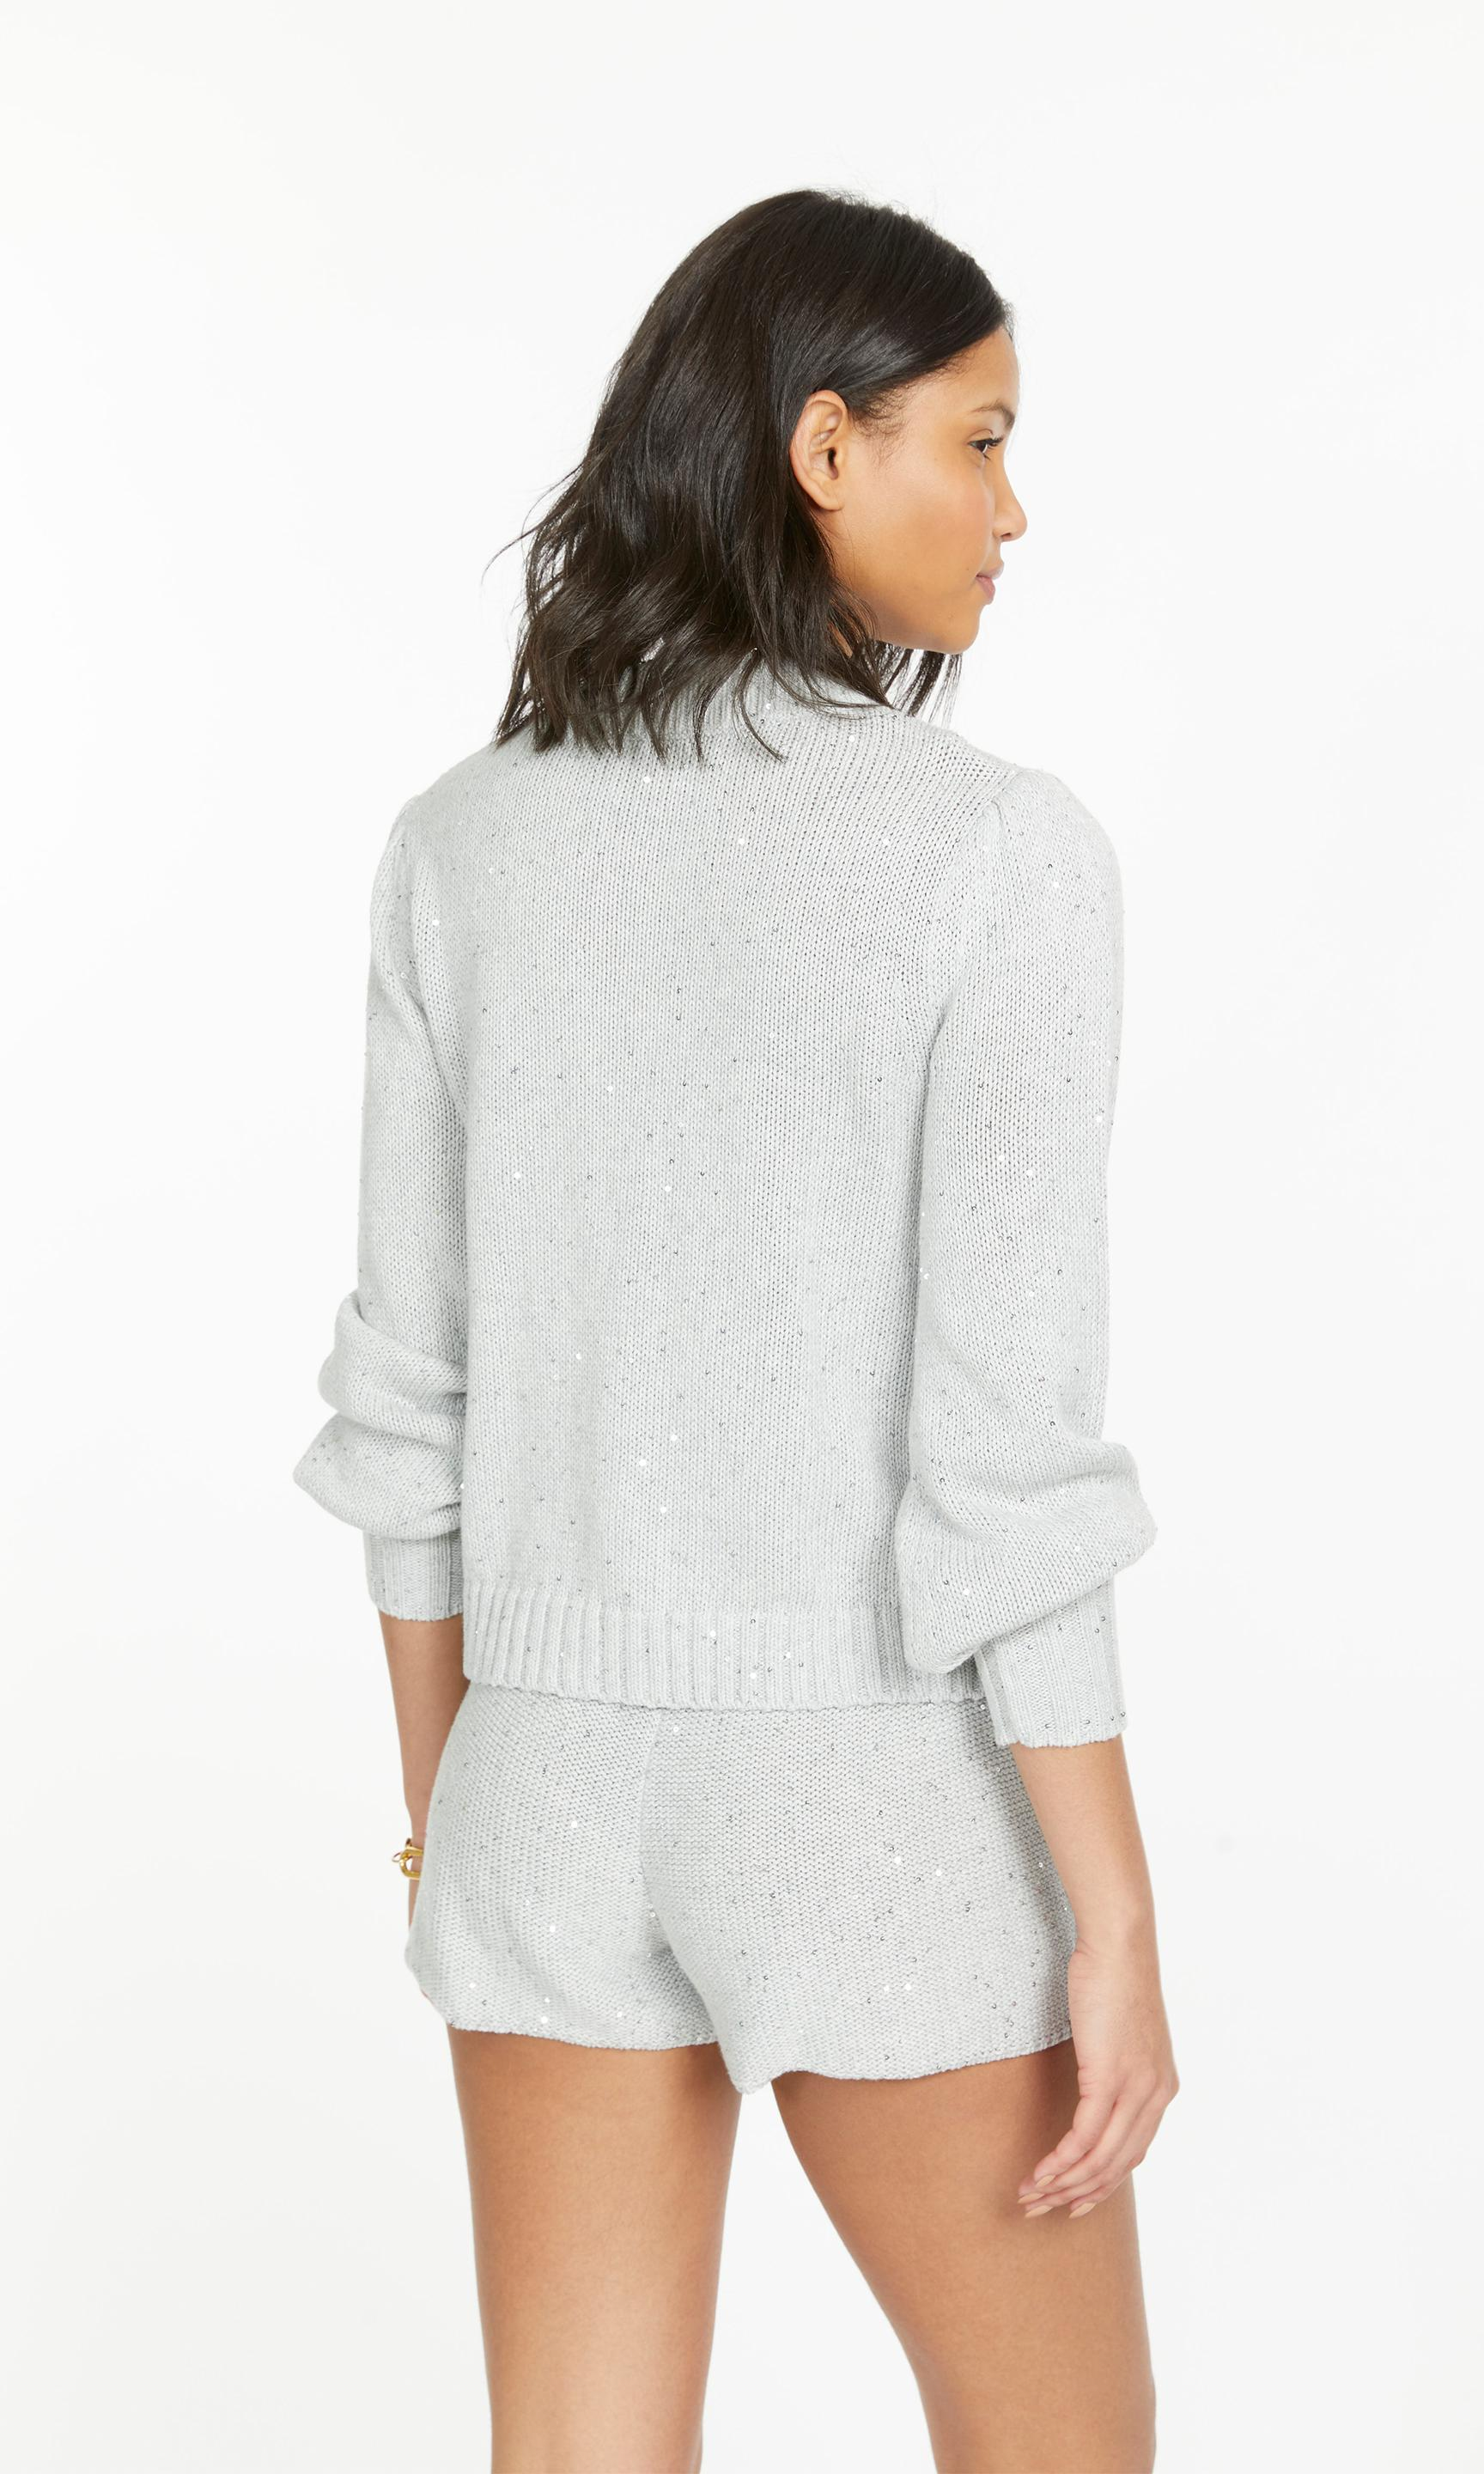 Lowell Sequin Knitted Cardigan 5